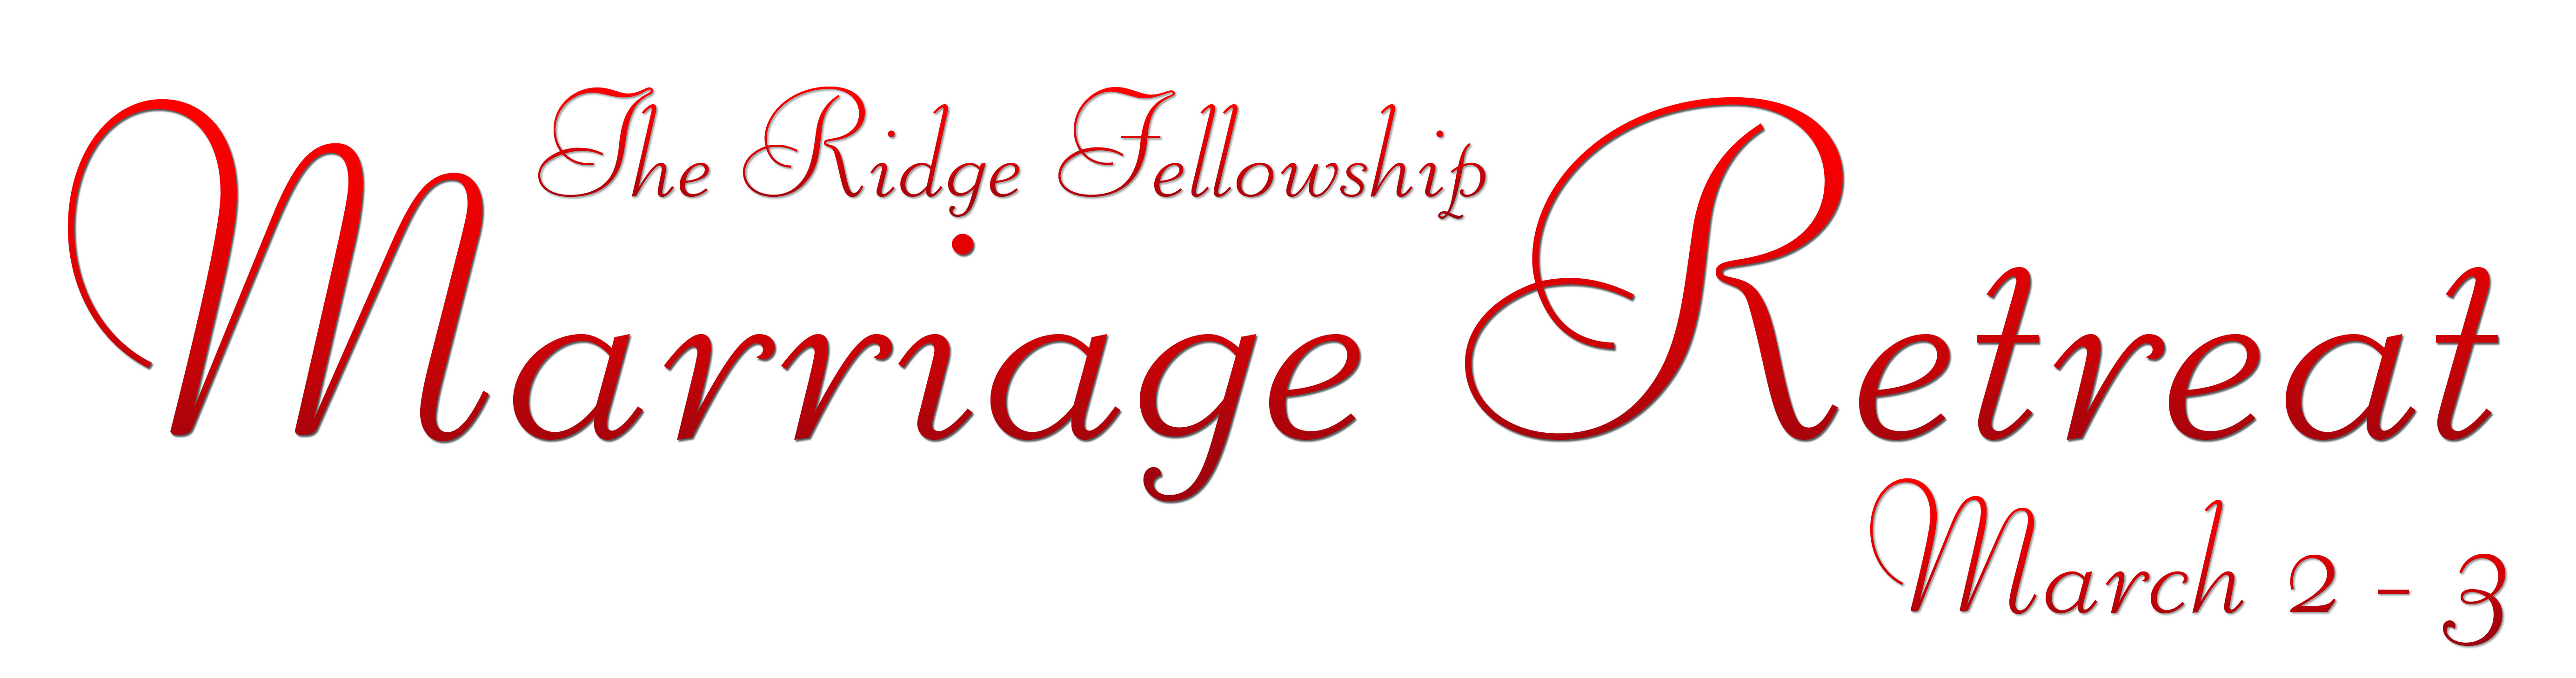 Marriage Retreat The Ridge Fellowship